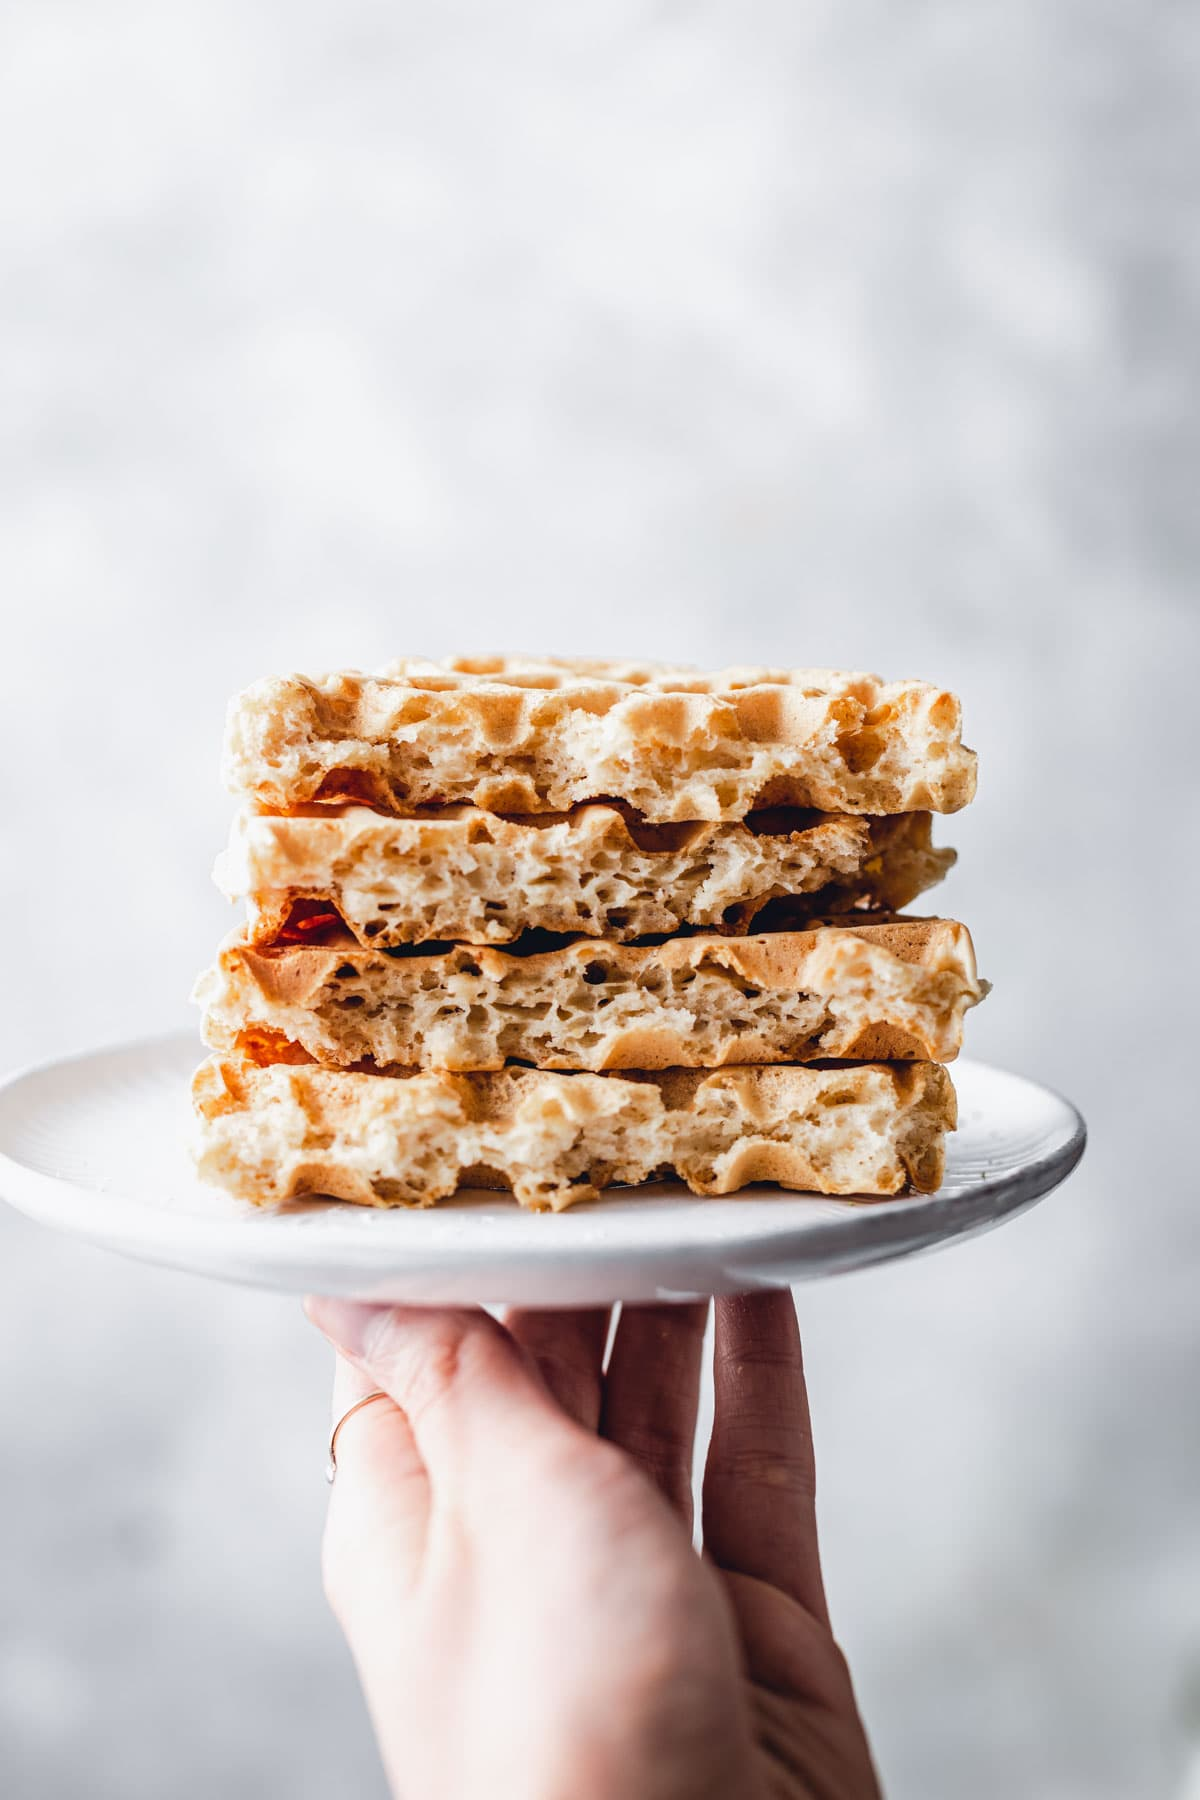 A stack of almond milk waffles on a small plate being held up by a hand.